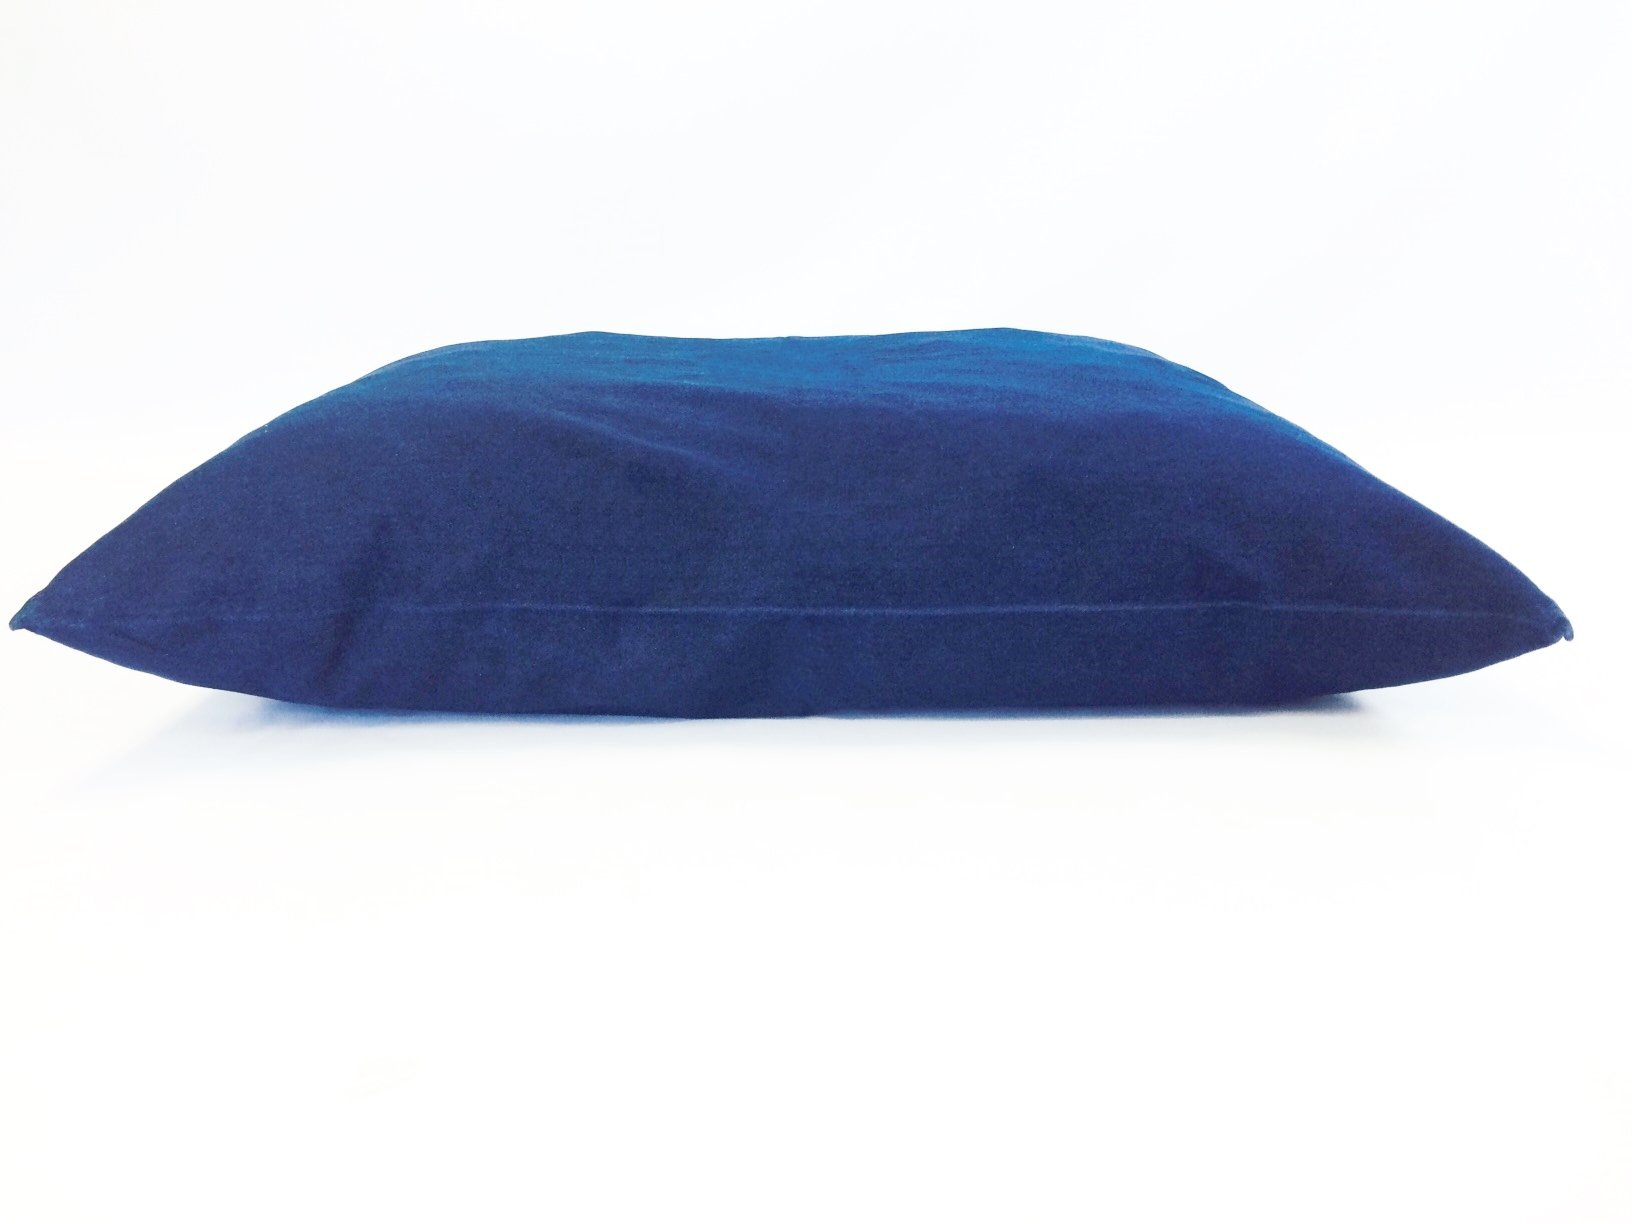 36''x29'' Medium Size MicroCushion High Density Memory Foam Soft Poly Fiber Waterproof Pet Pillow Bed with Removable Zippered Durable Blue Denim Jean Cover Case for Small to Medium Dogs